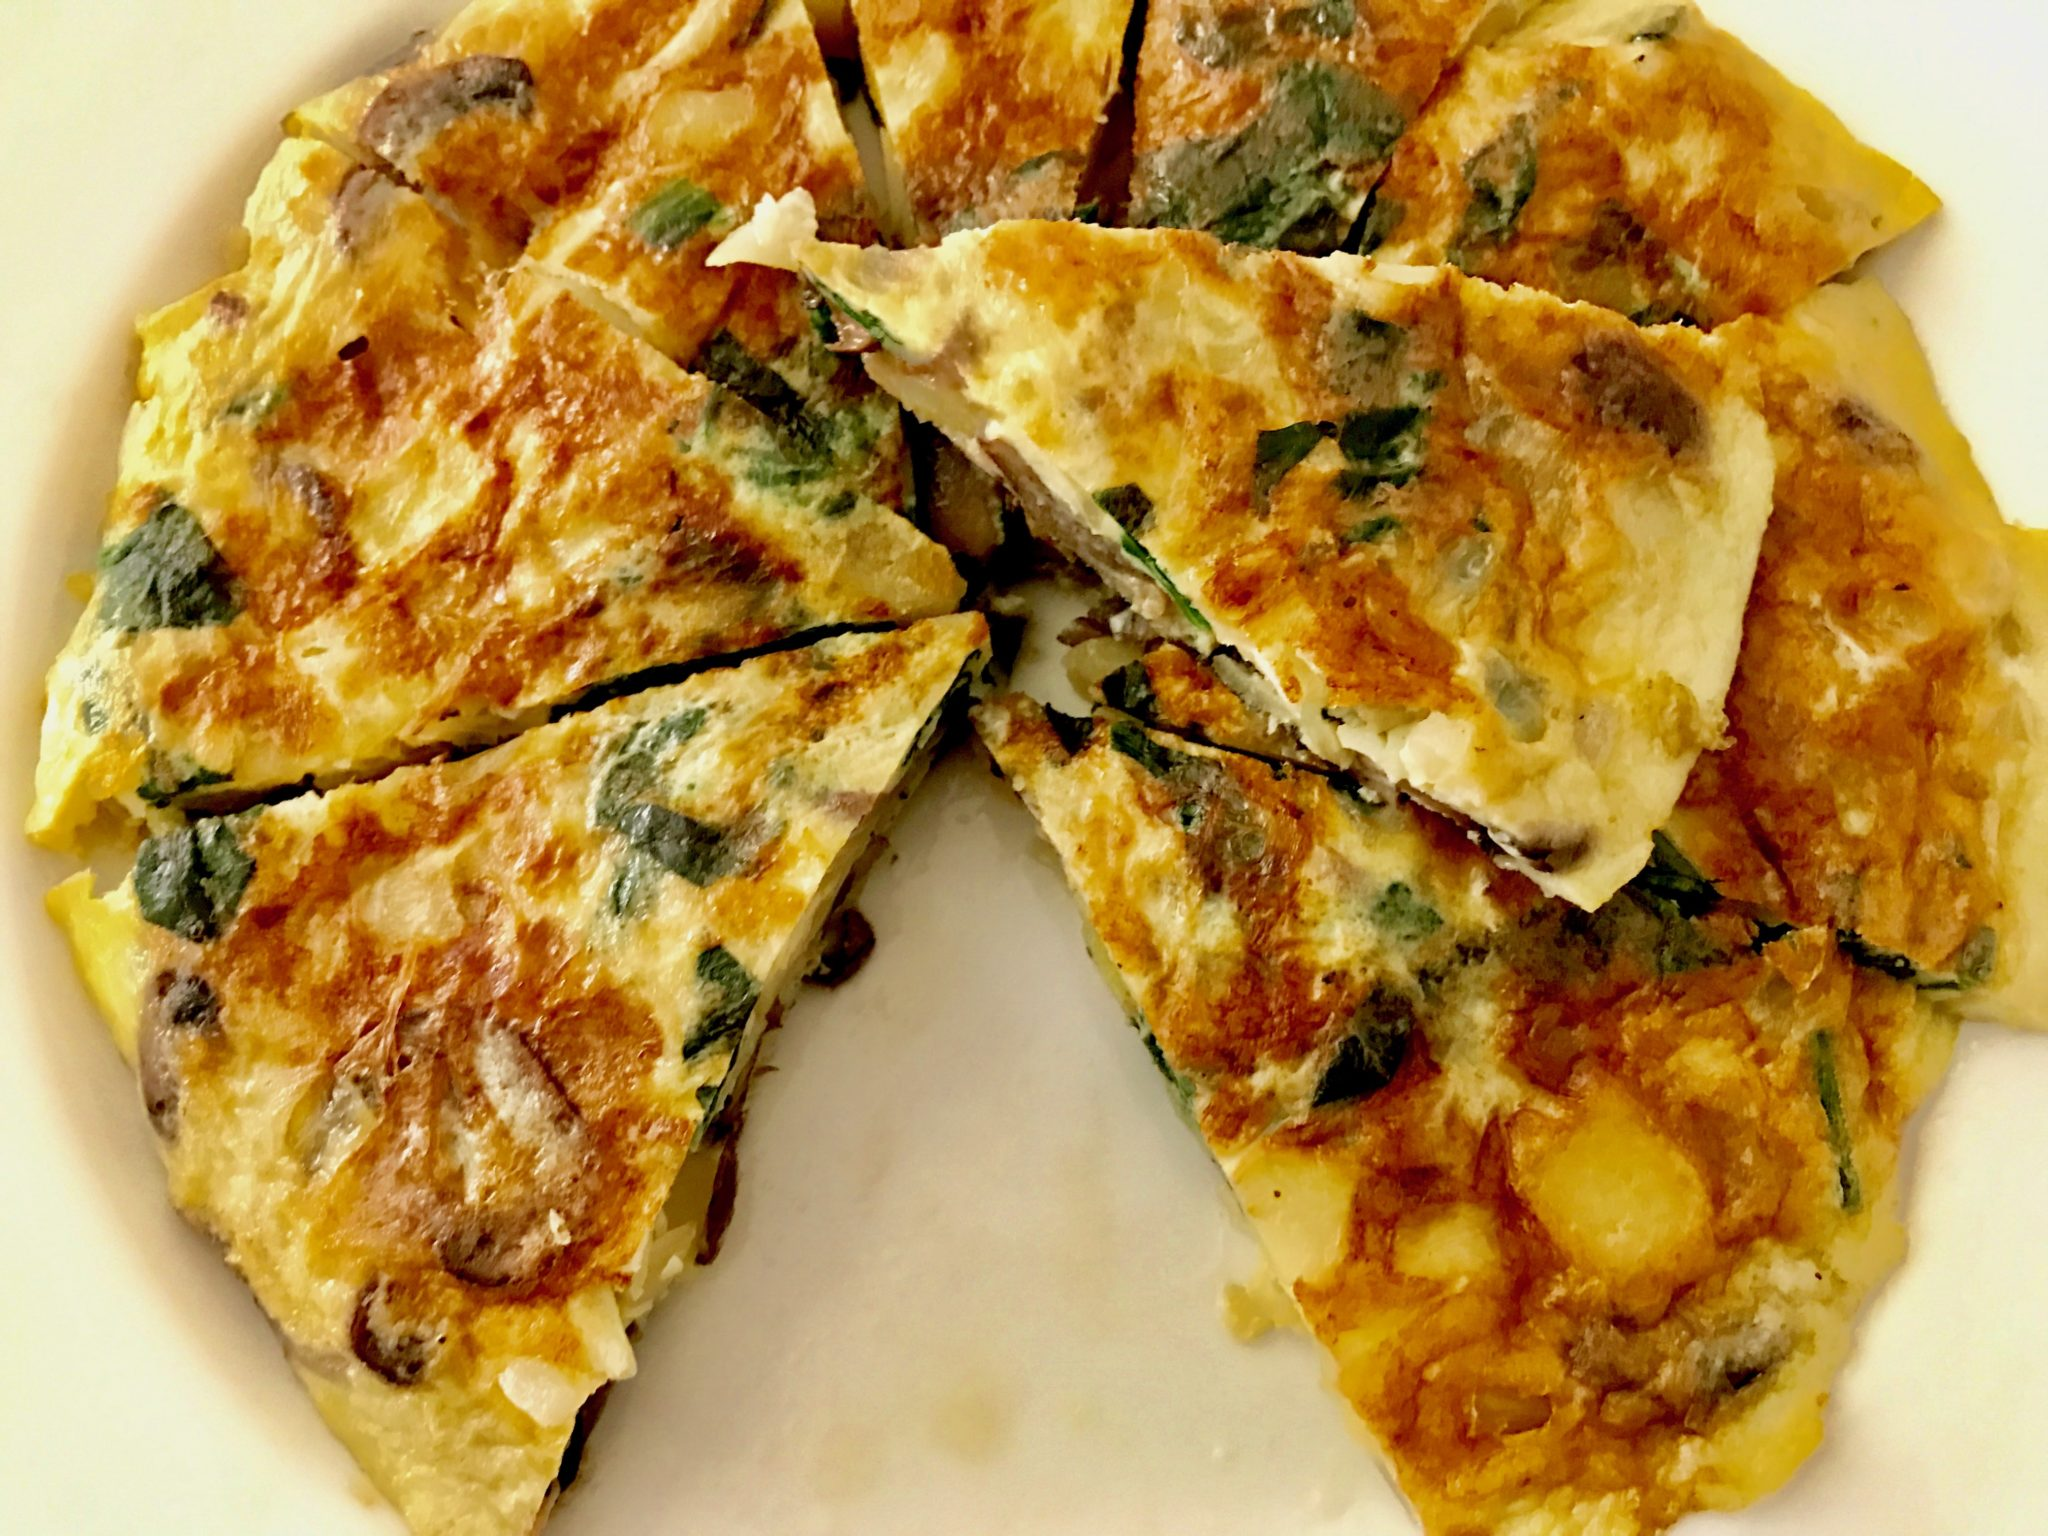 finished spanish omelette or tortilla patata